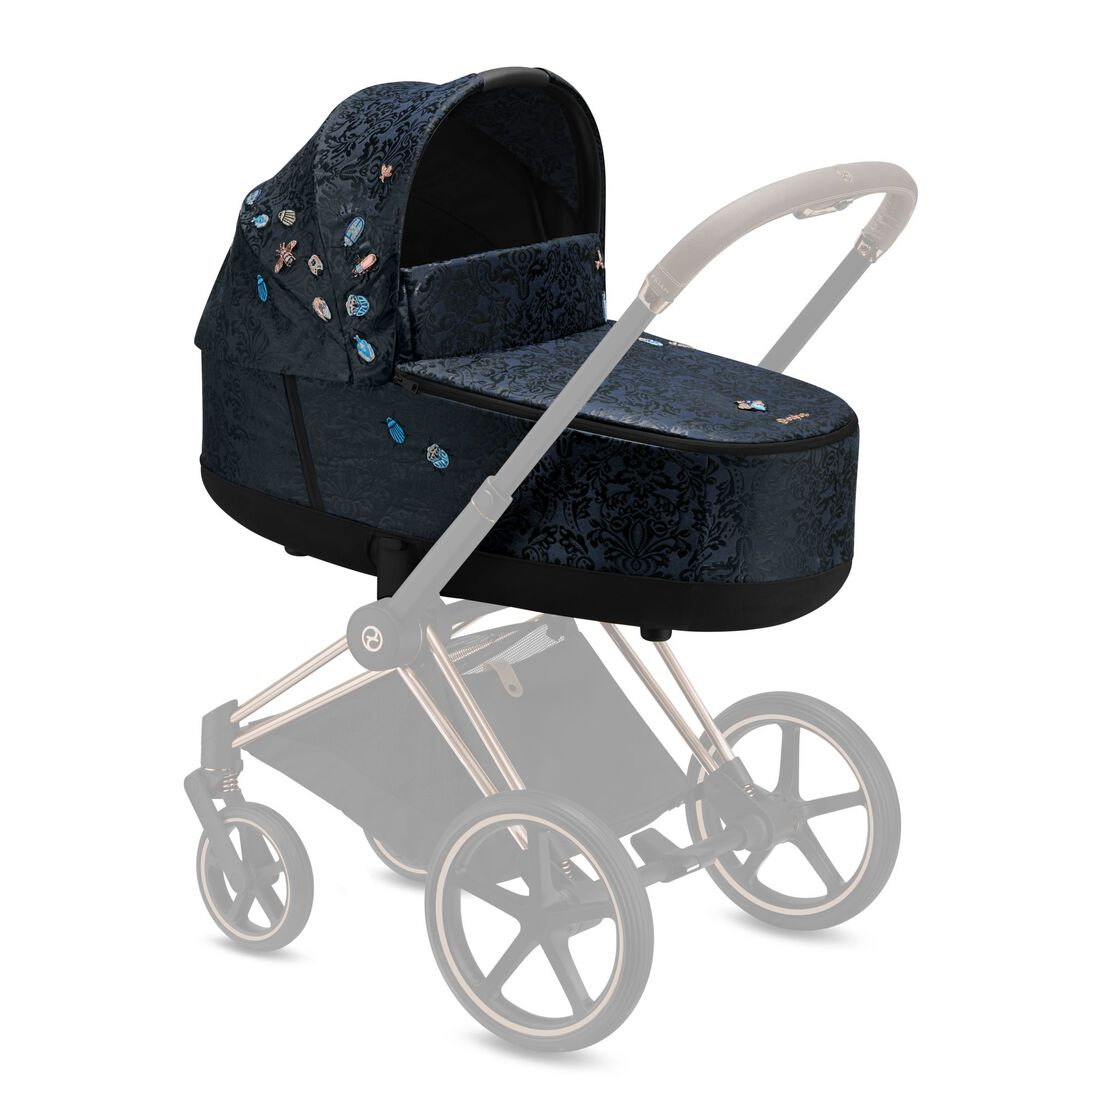 CYBEX Priam Lux Carry Cot - Jewels of Nature in Jewels of Nature large image number 4